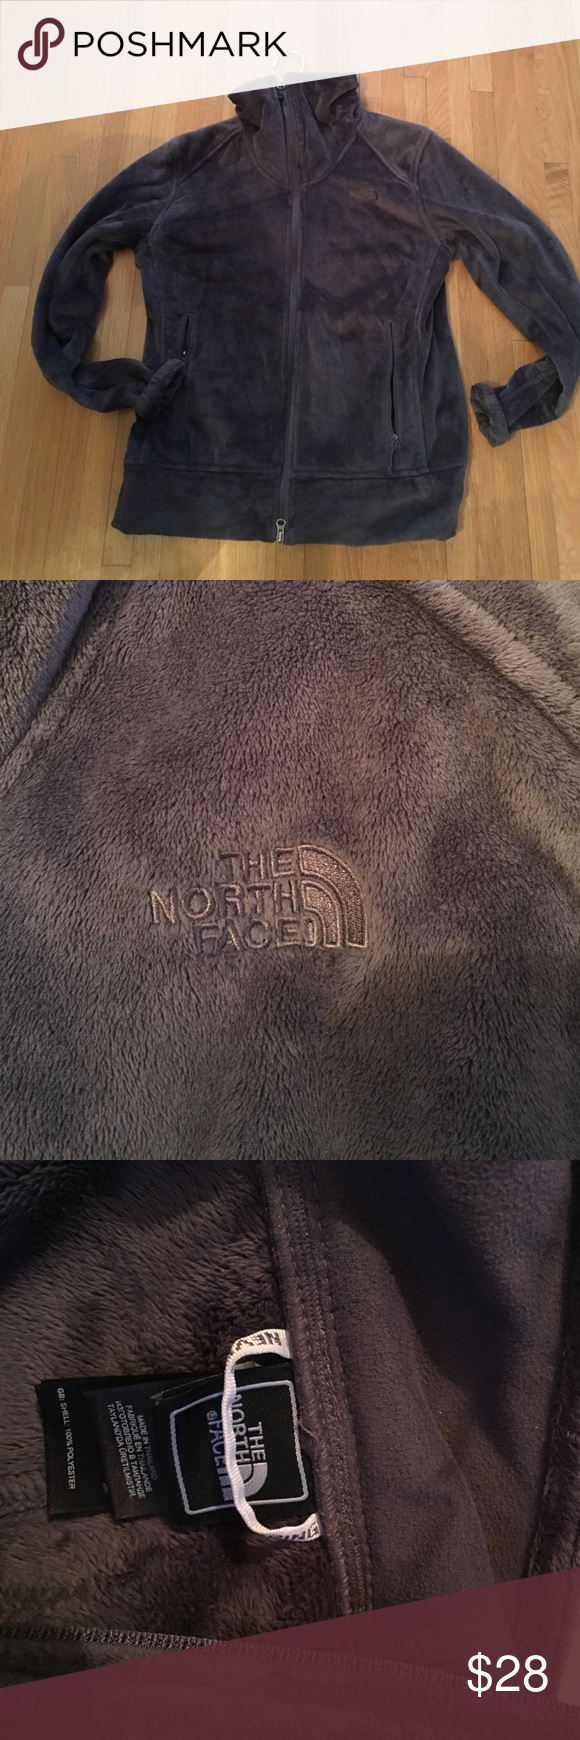 NORTH FACE velour zip up jacket North face jacket in excellent condition. Zipper front closure, funnel neck. Super soft!! Two front side pockets. Size women's large. It's 100% polyester. No flaws, to big for me North Face Jackets & Coats